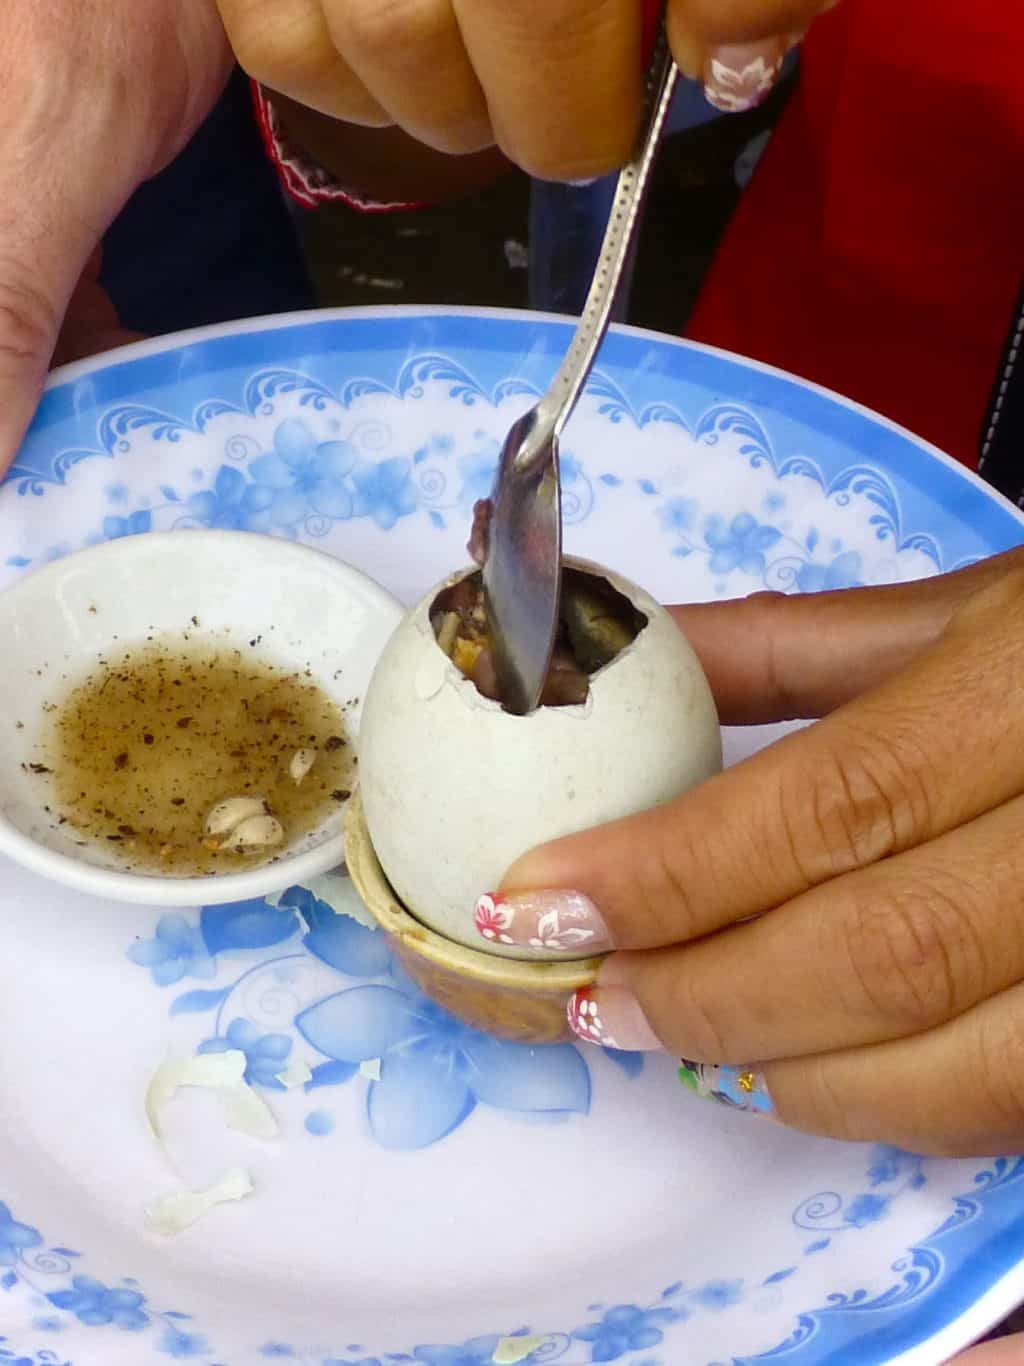 Balut egg is not for the faint of heart: but what is it exactly? And why is it so controversial? Let's find out.